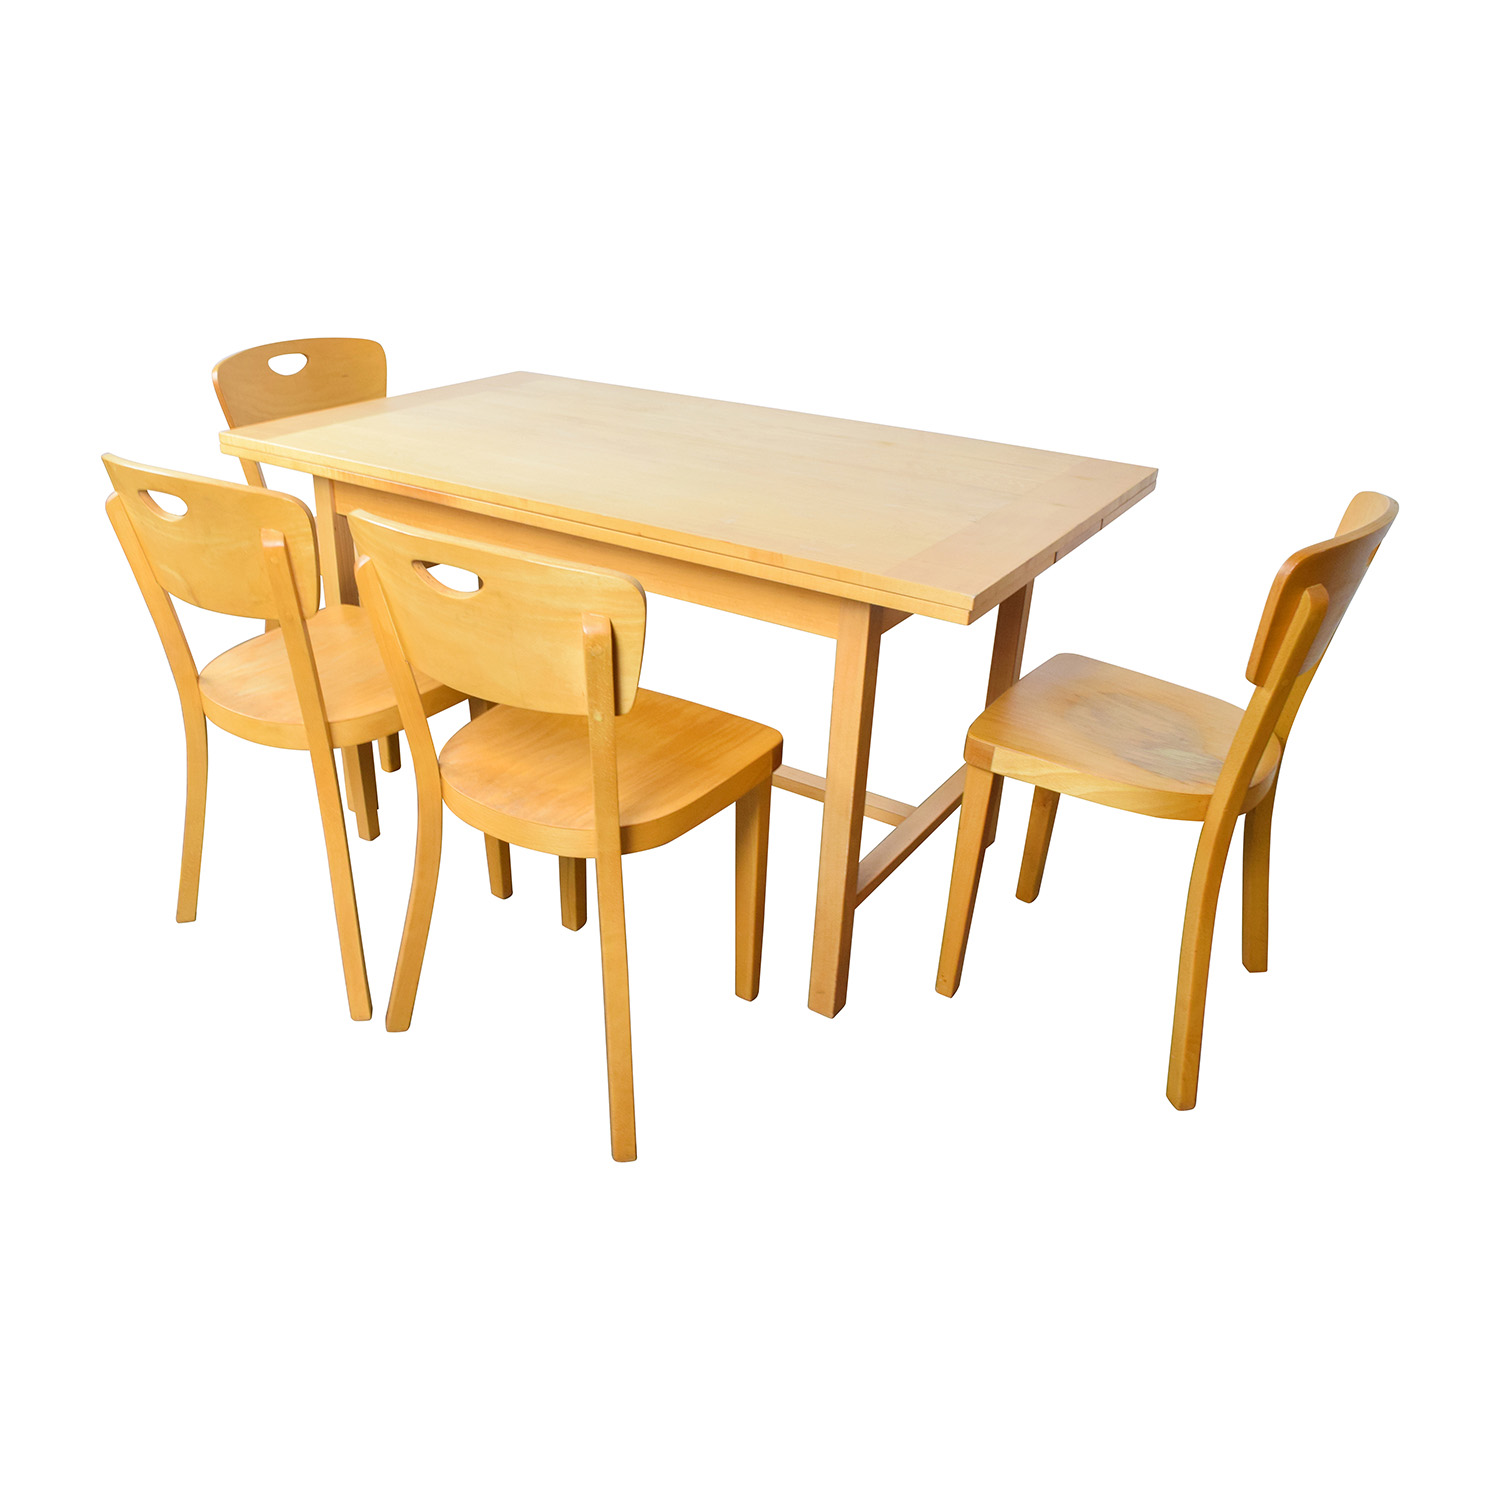 IKEA IKEA Side Extendable Dining Table and Four Chairs